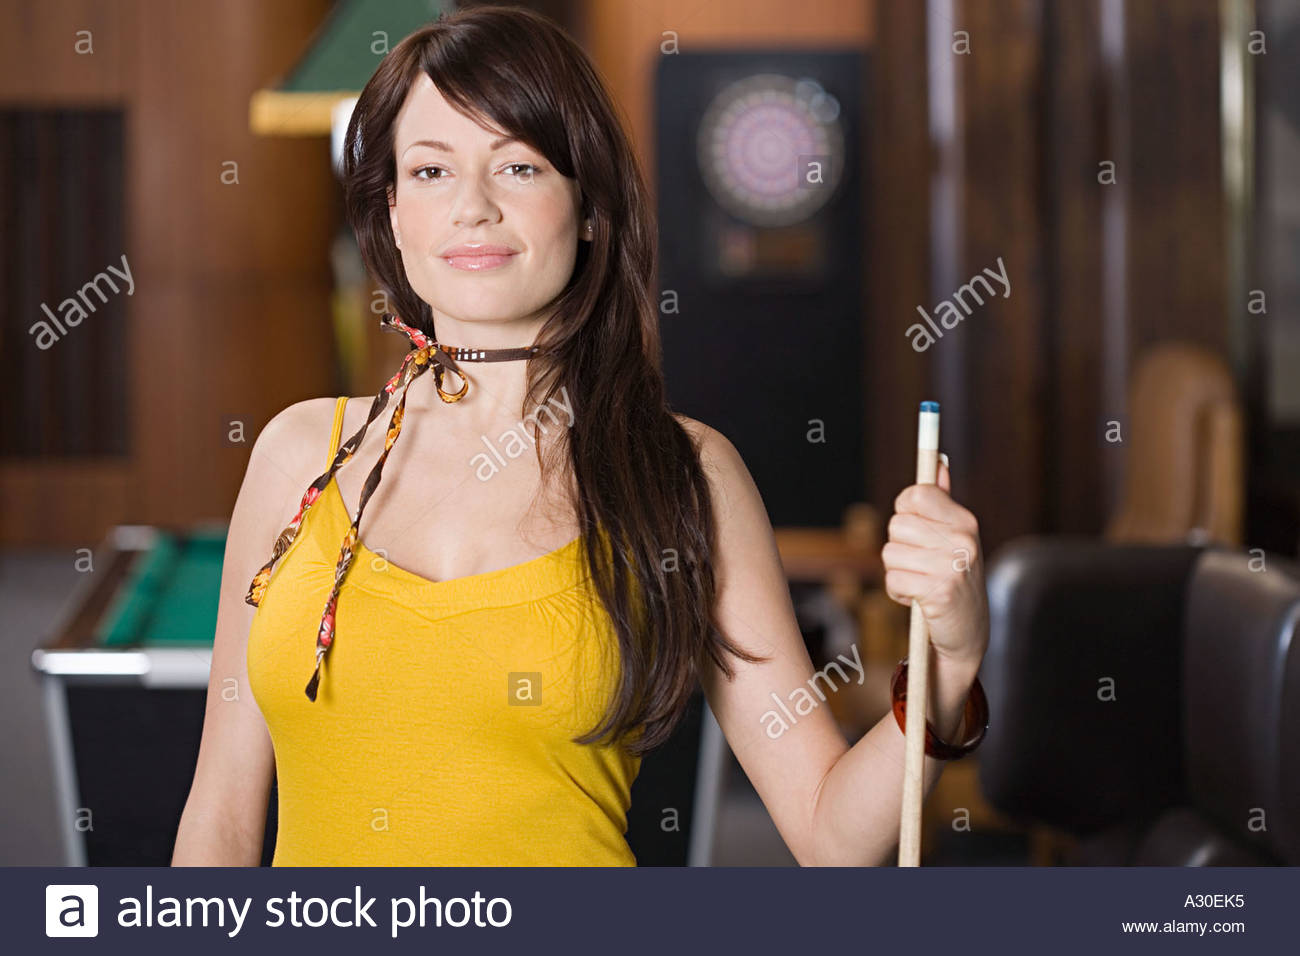 Woman with pool cue - Stock Image